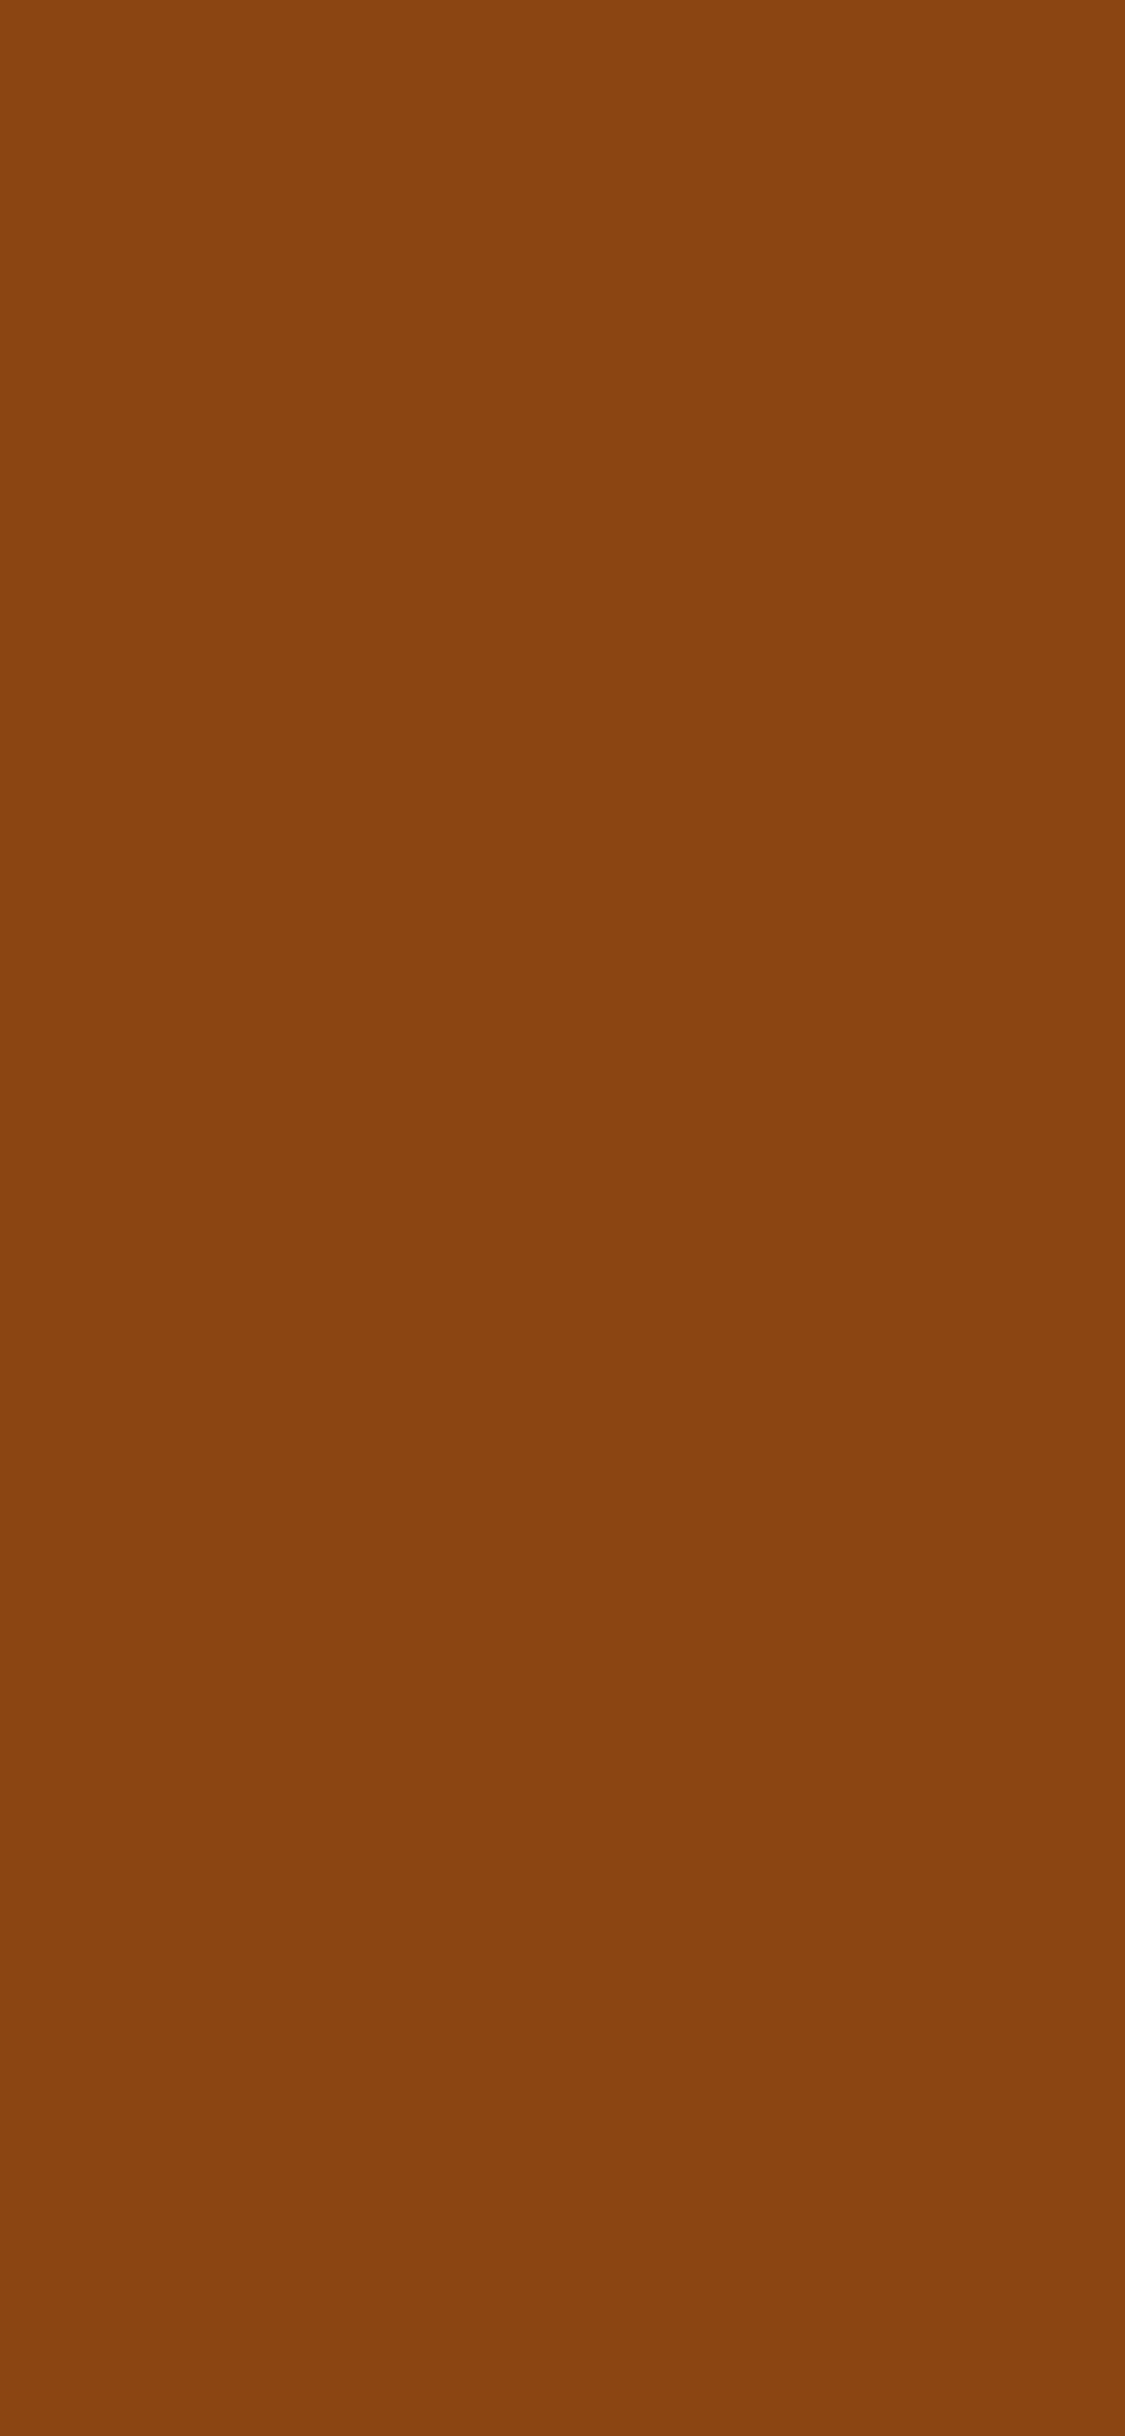 1125x2436 Saddle Brown Solid Color Background